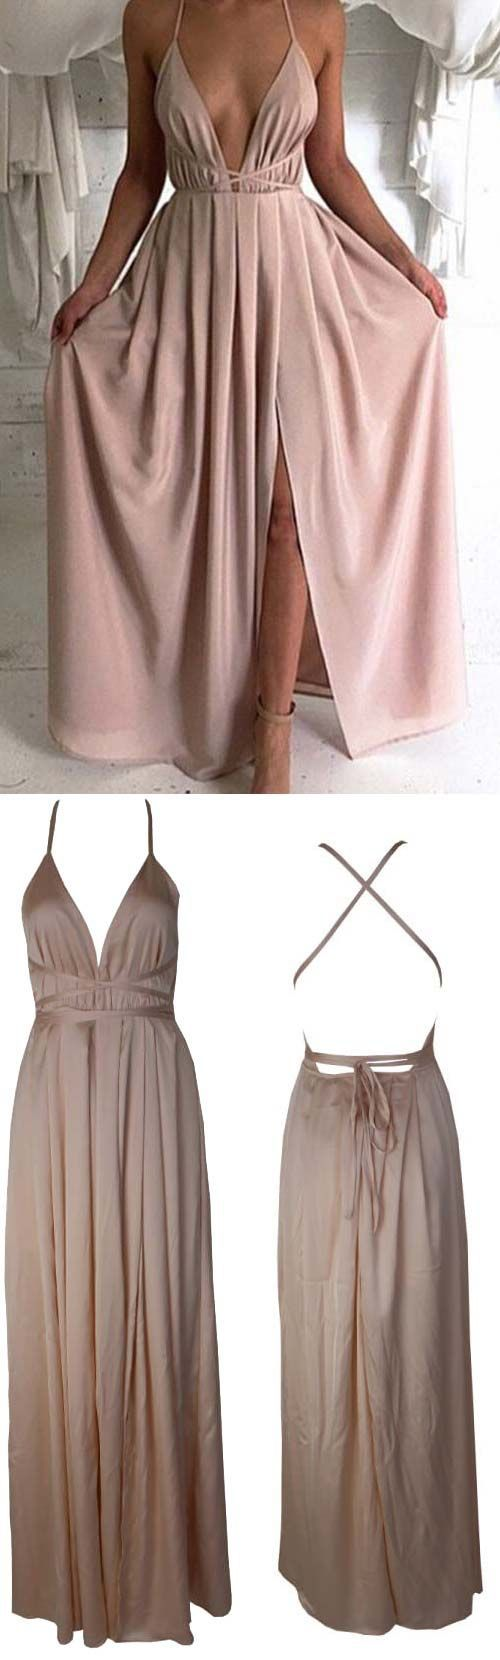 Blush Pink prom dresses,Sexy Prom dress,Backless prom dress,Plunge V Neck evening gowns,Slit prom dress,2016 prom dress,long prom dress,Criss cross straps prom dress,